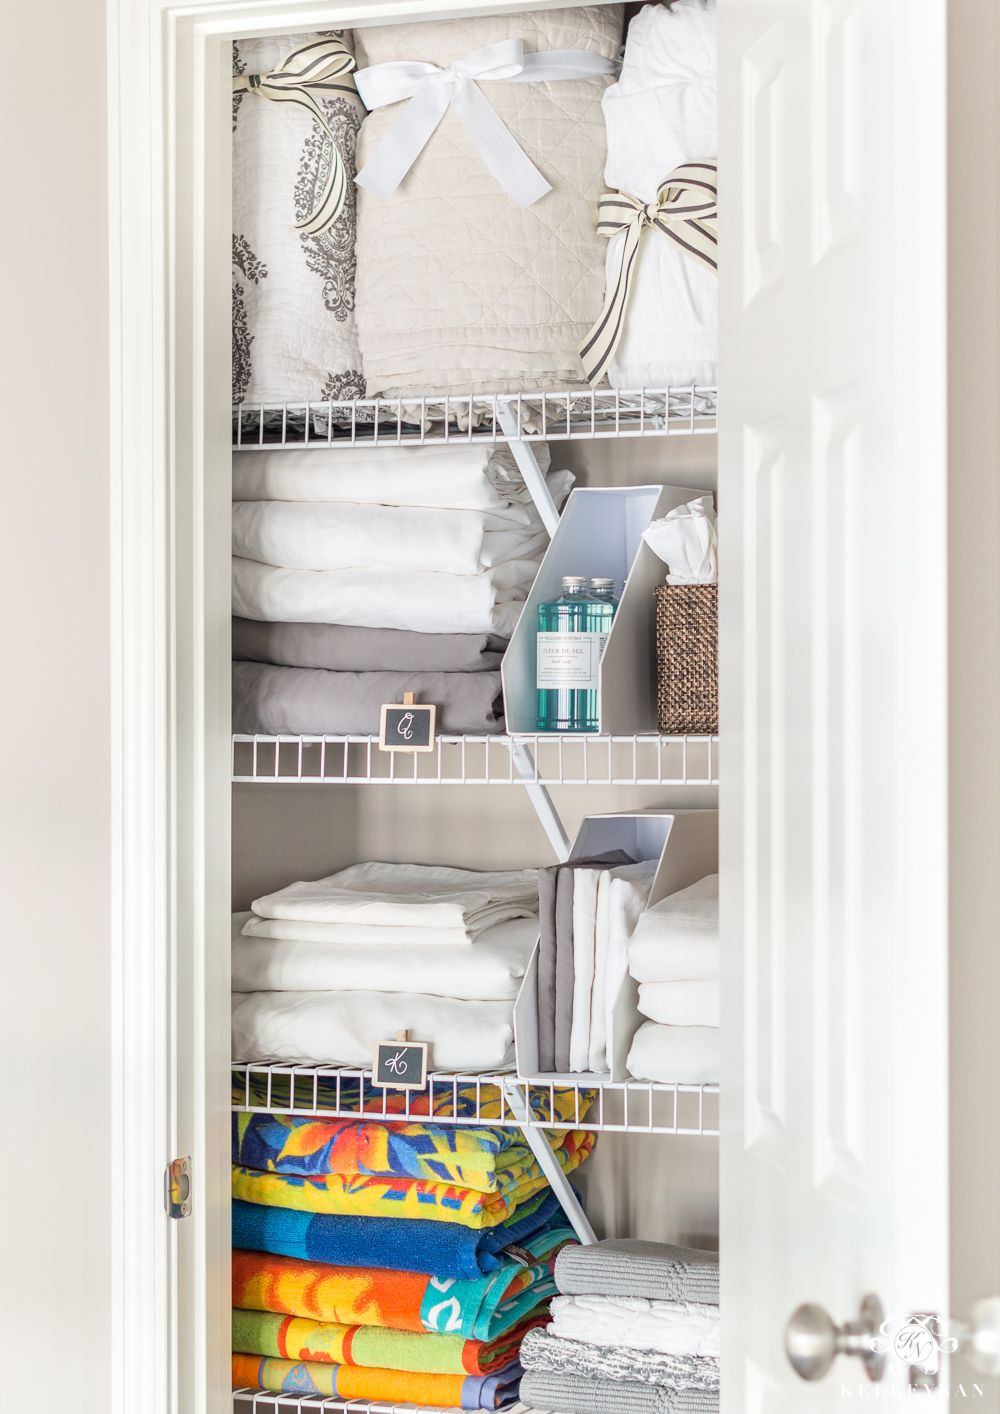 A Small Organized Linen Closet And Ideas To Store Bulky Bedding Kelley Nan Organizing Linens Linen Closet Organization Linen Closet